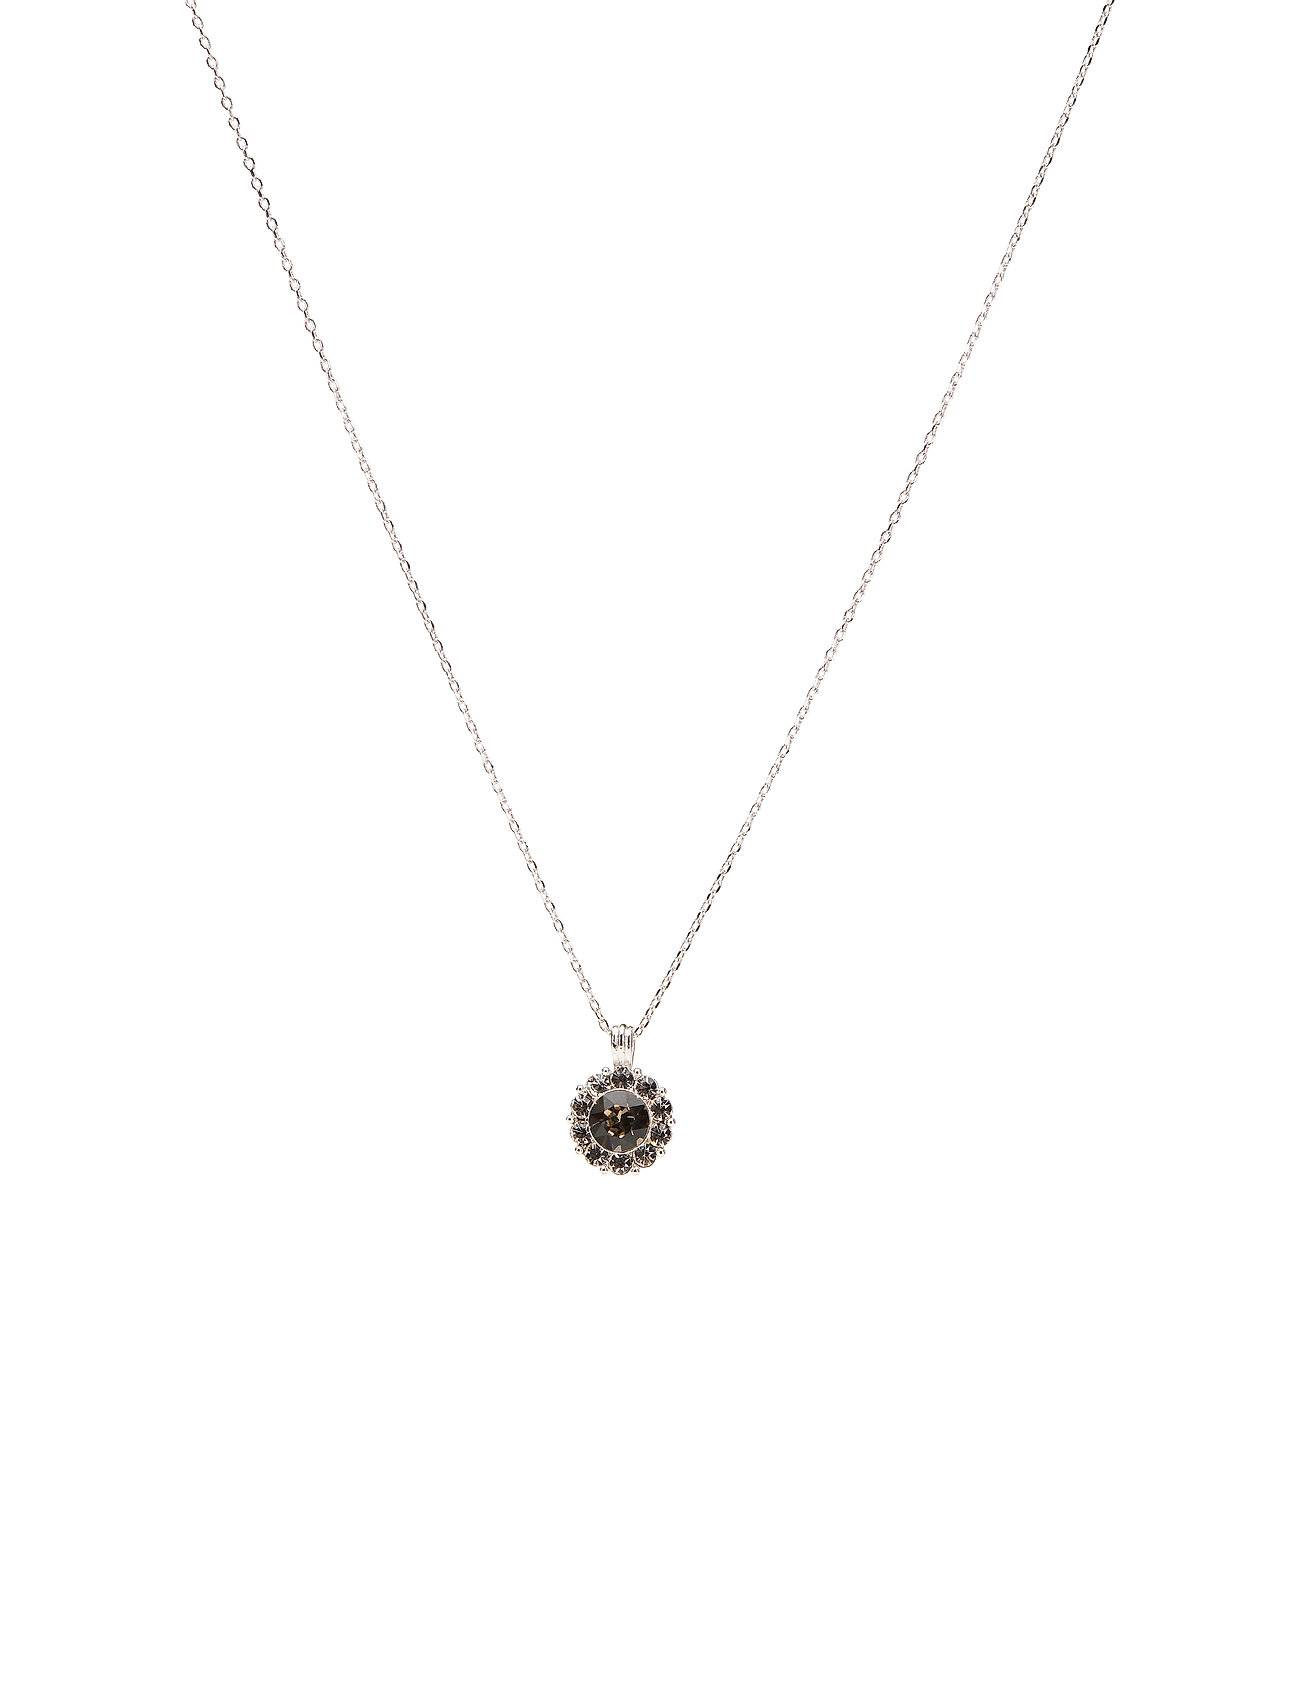 LILY AND ROSE Sofia Necklace - Diamond Grey Accessories Jewellery Necklaces Dainty Necklaces Harmaa LILY AND ROSE